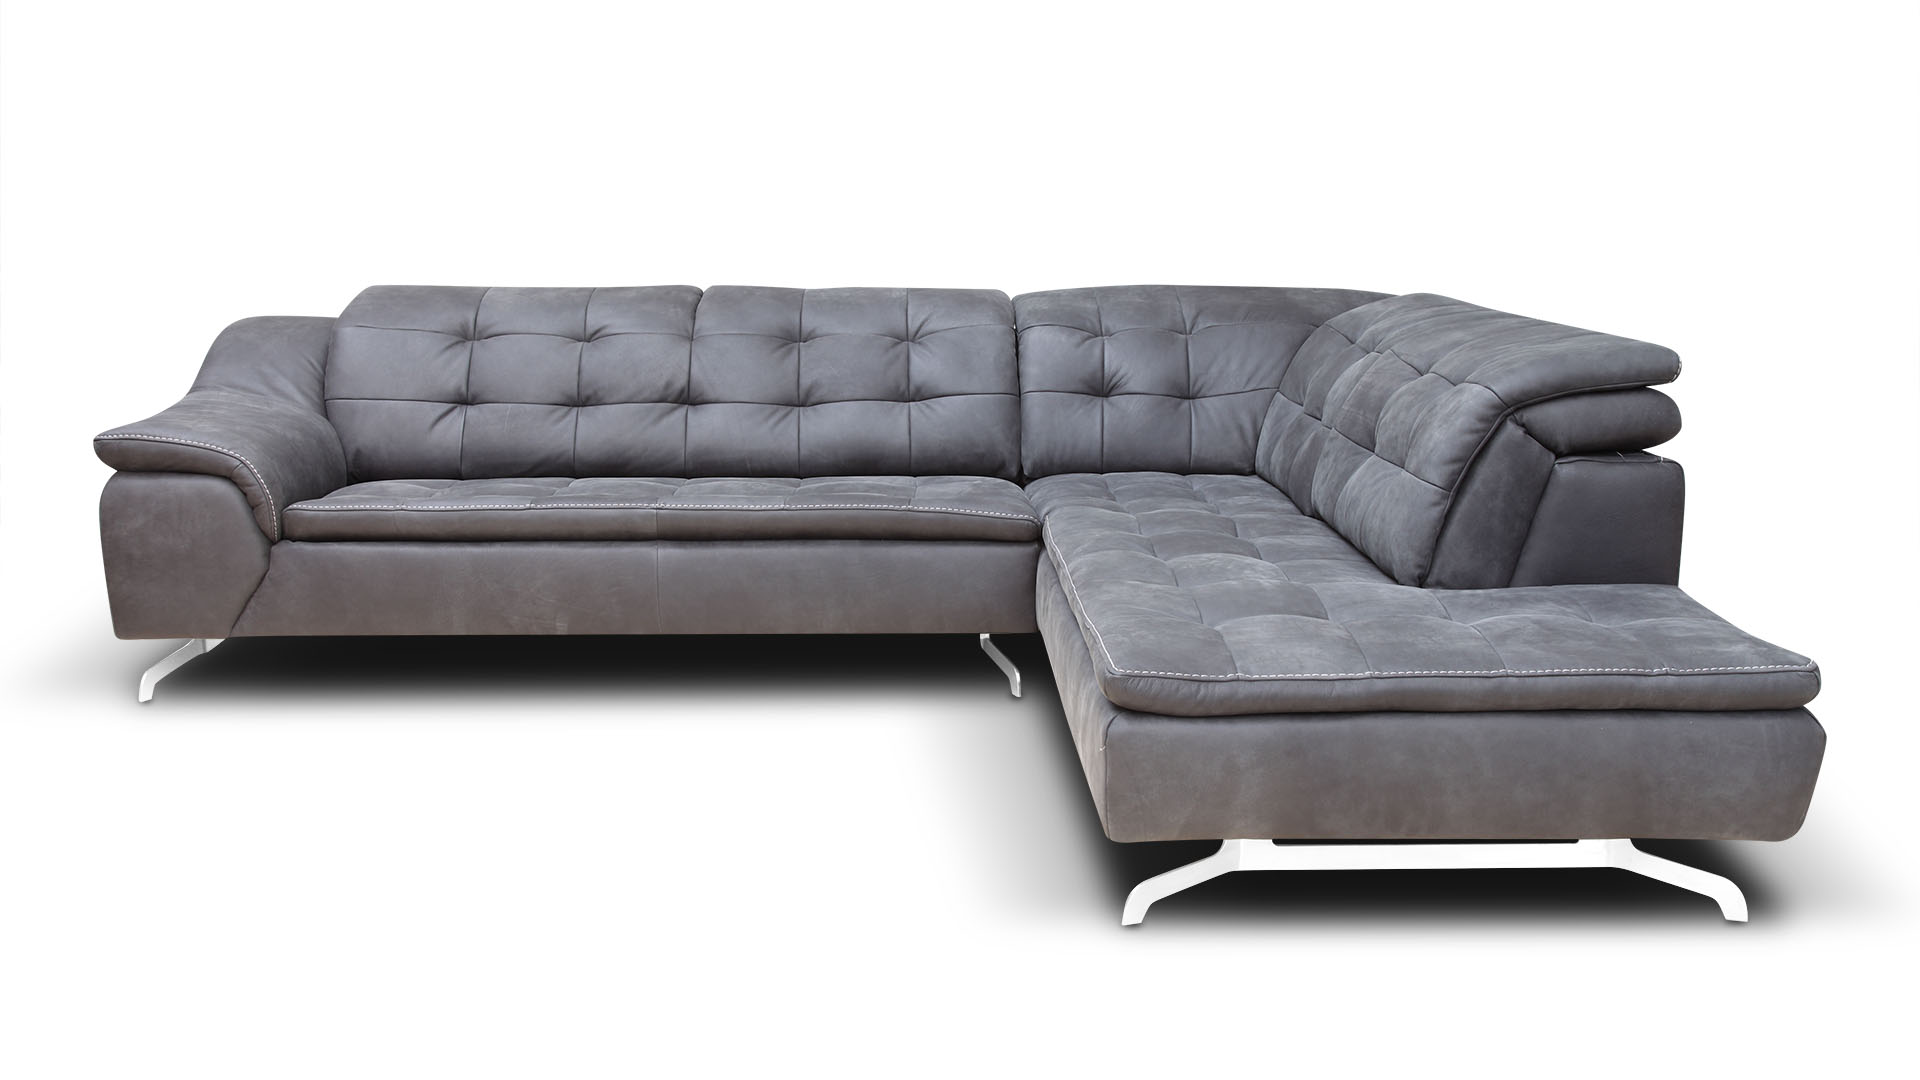 cloud 2 sectional sofa beautiful sofas with designs  braccisofas